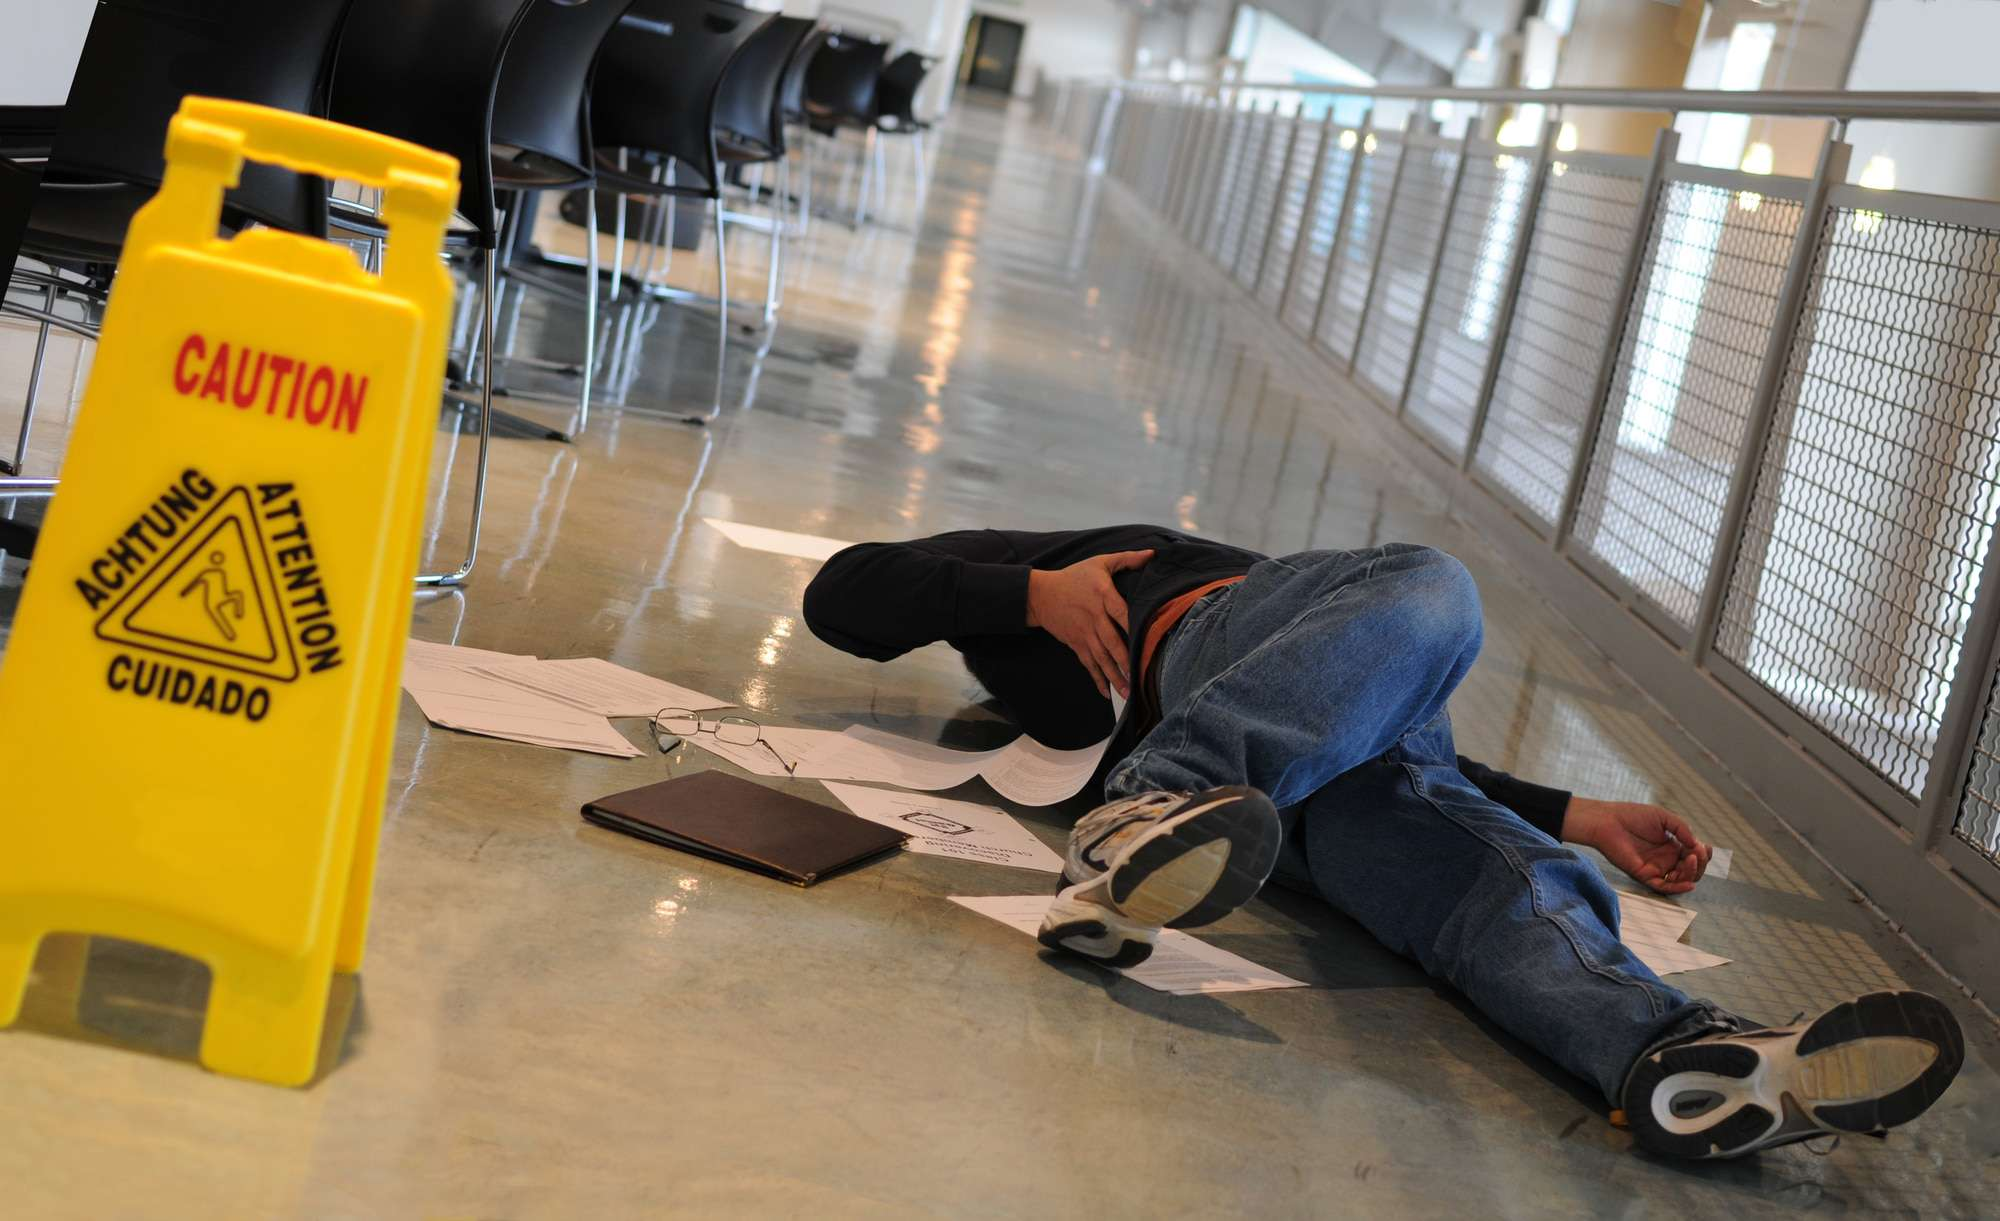 A man who slipped on a wet floor beside a bright yellow caution sign holds his back in pain